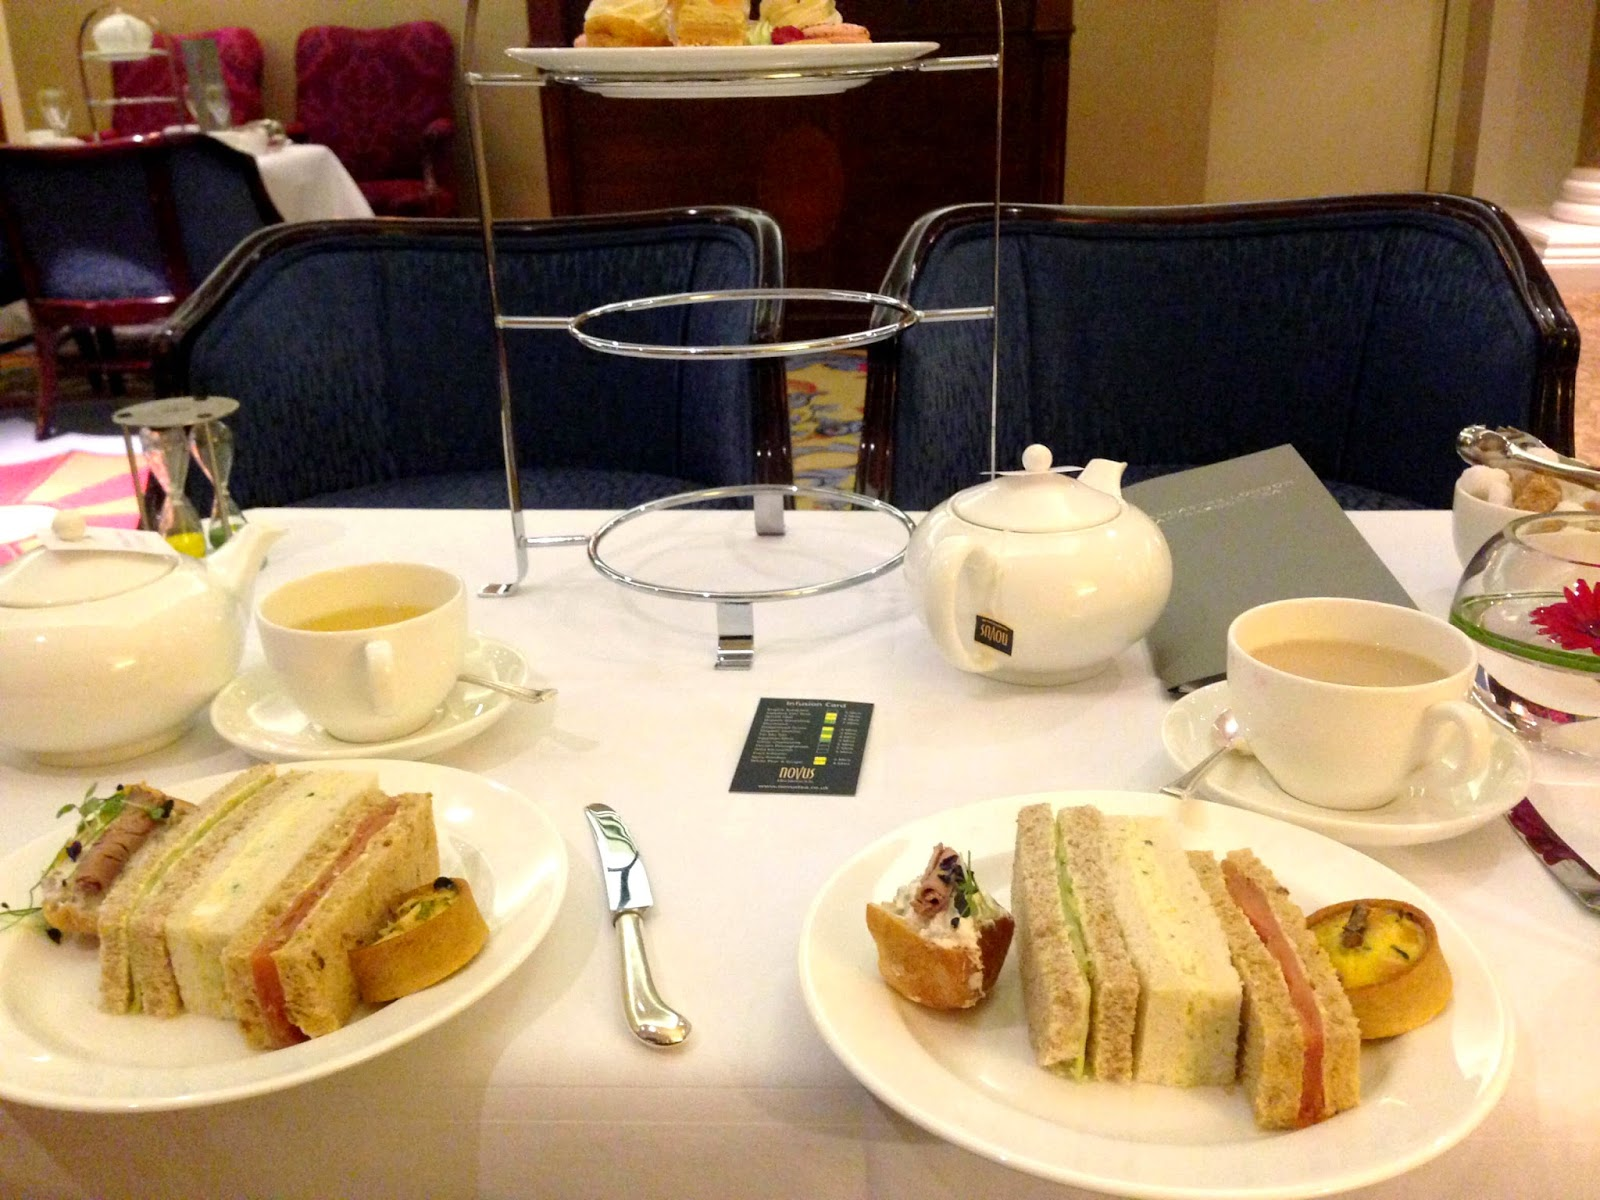 Sandwich selection afternoon tea